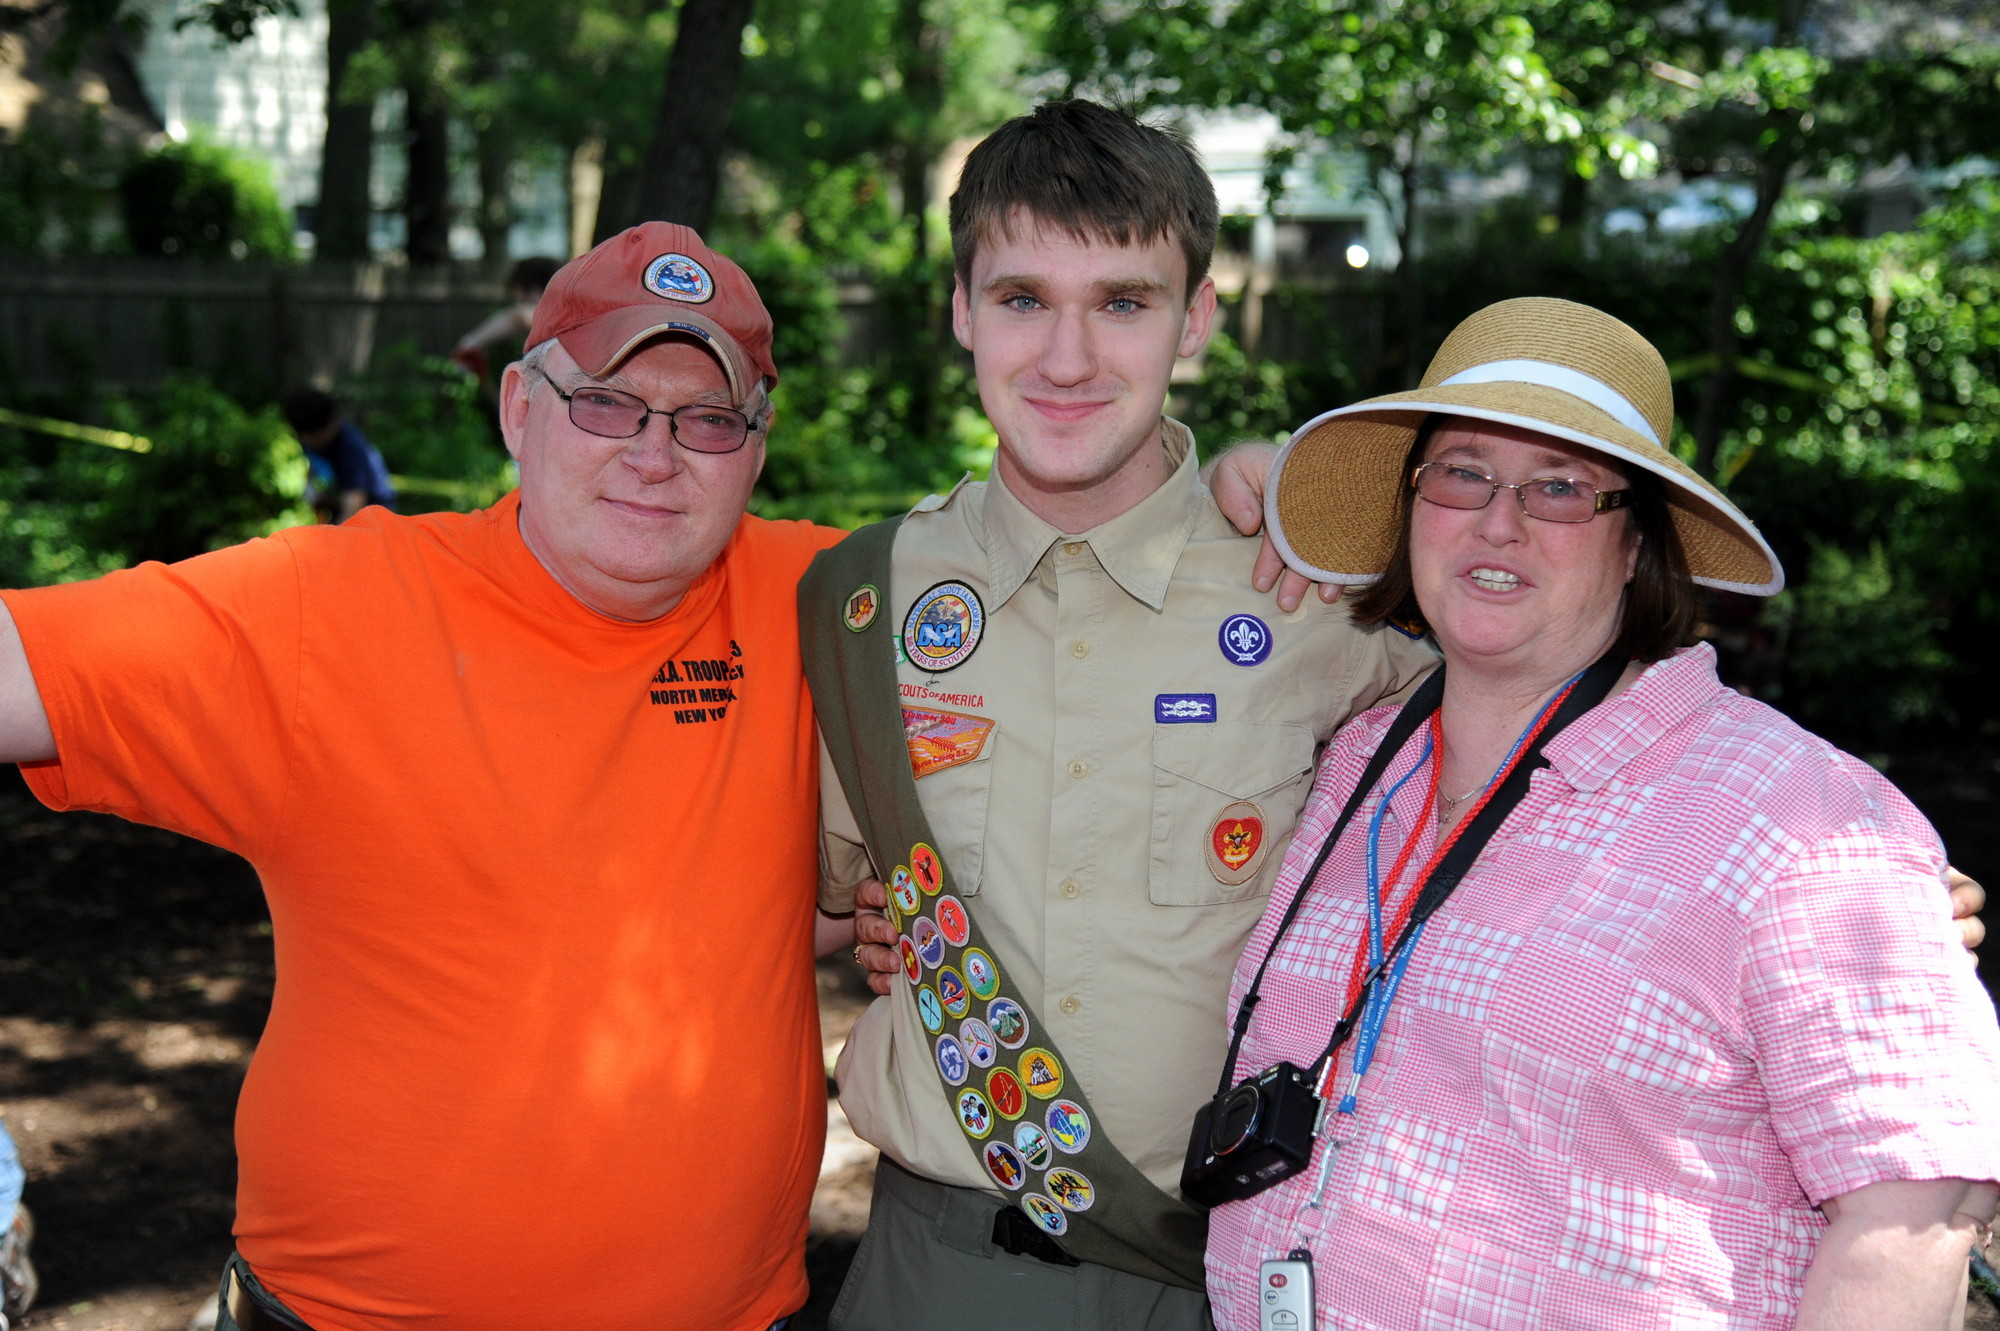 John Heverin, left, and his wife Ann, right, expressed pride in their son Sean, center, after he completed his Eagle Scout project.